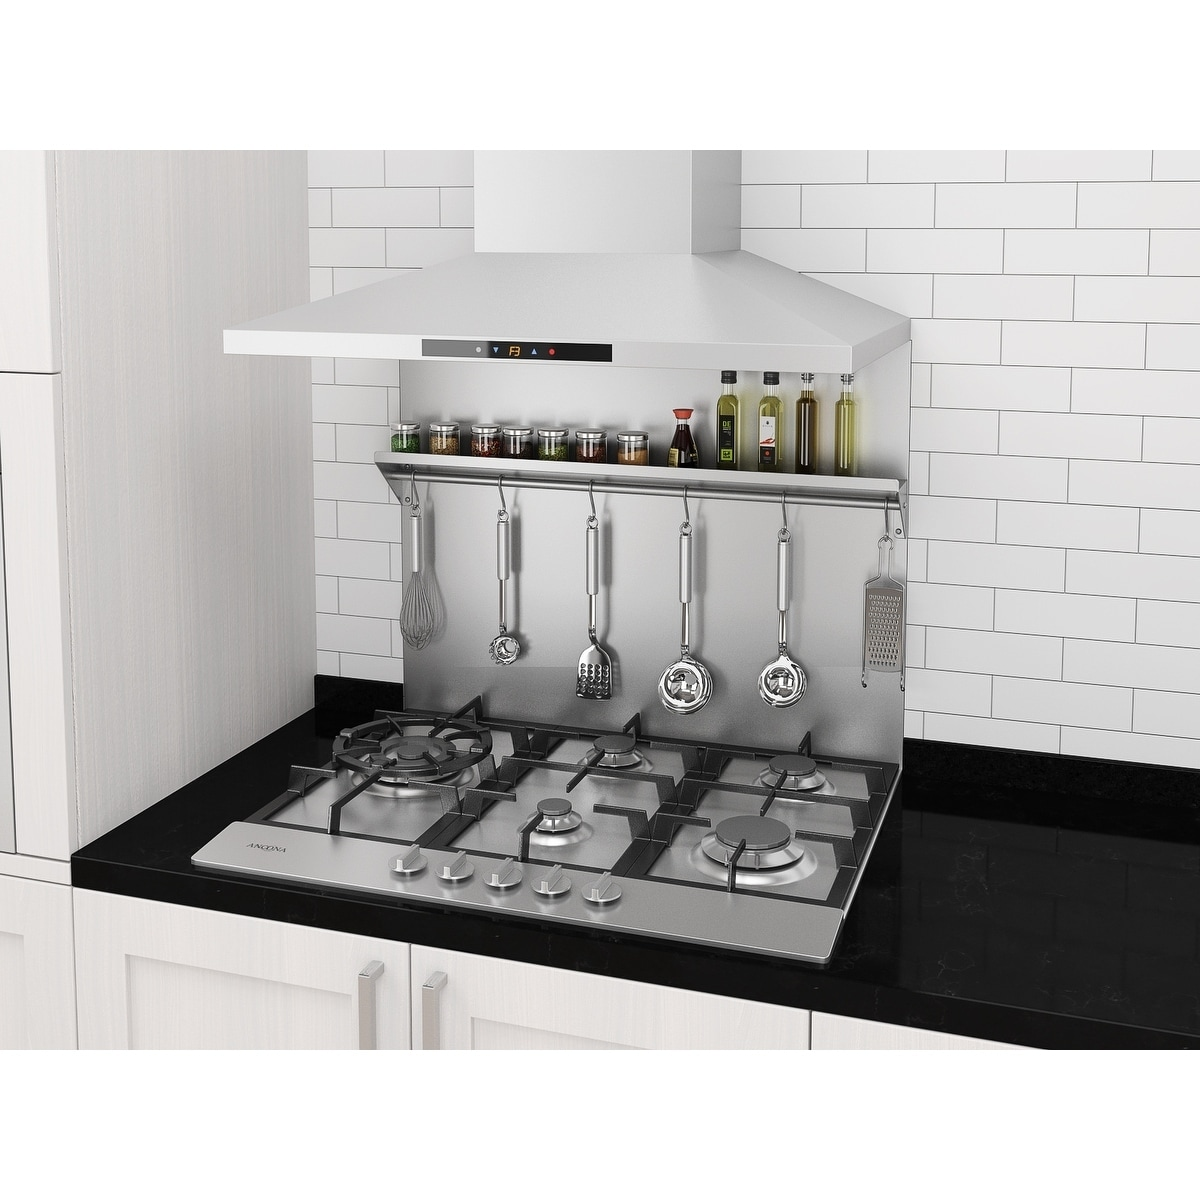 - Shop Ancona 30 In. Stainless Steel Backsplash With Stainless Steel